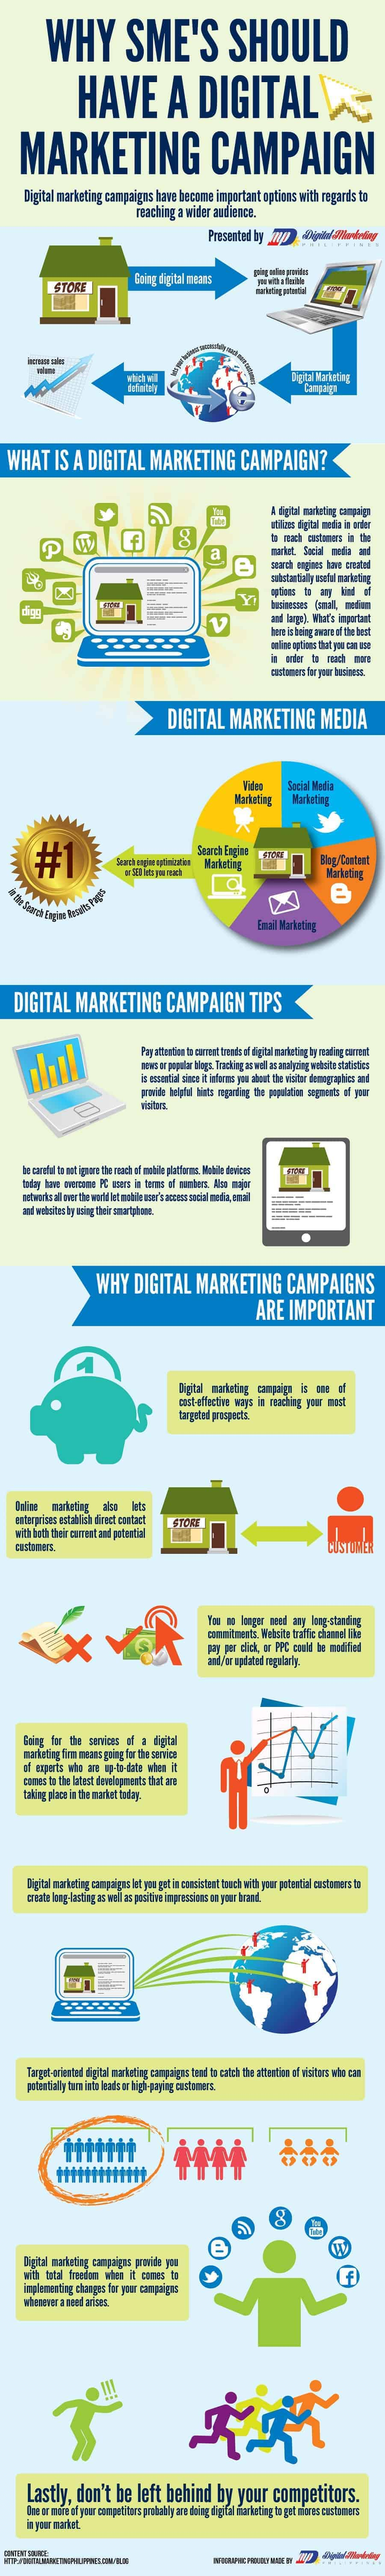 why digital marketing is crucial for small business